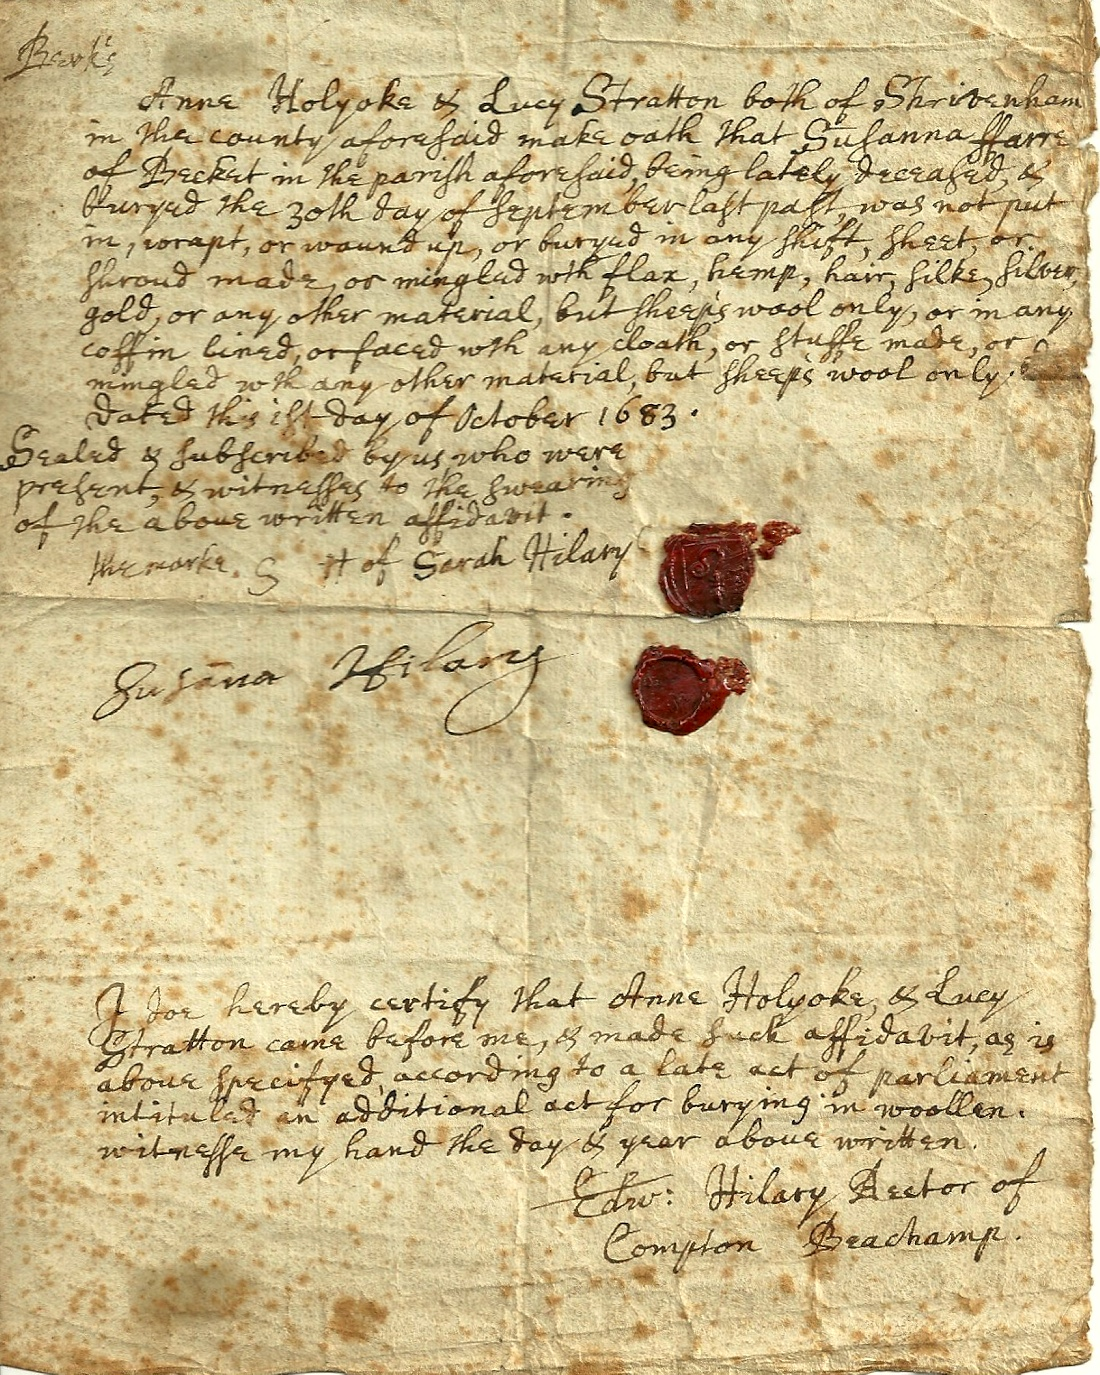 Original affidavit sworn by Anne Holyoke and Lucy Stratton 1683